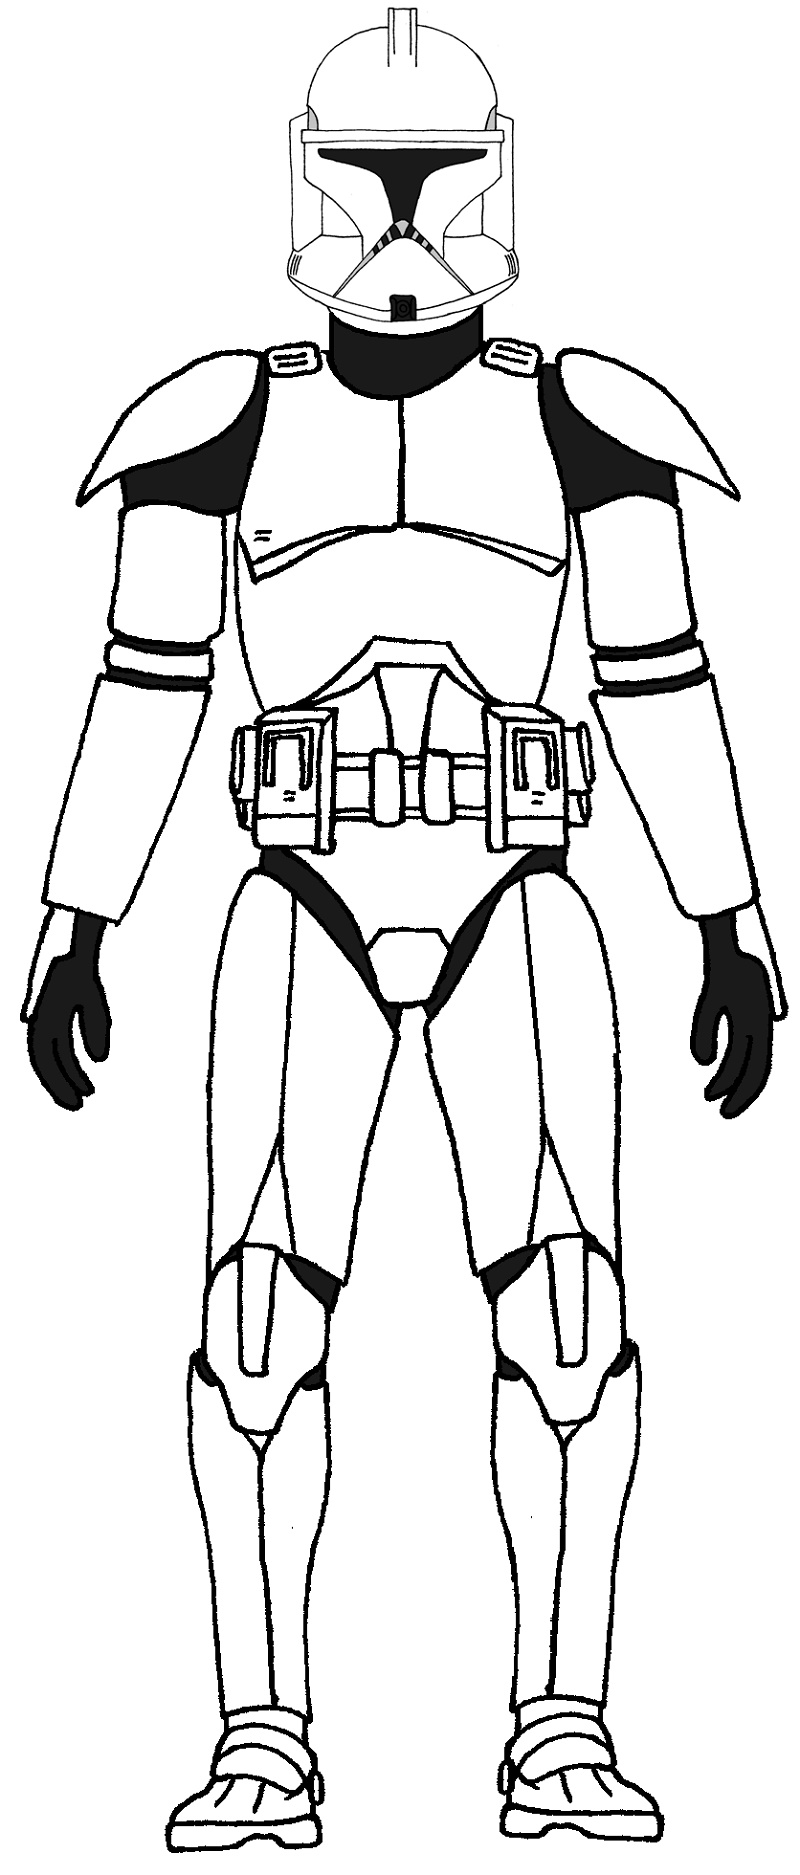 Clone Trooper Coloring Pages To Print